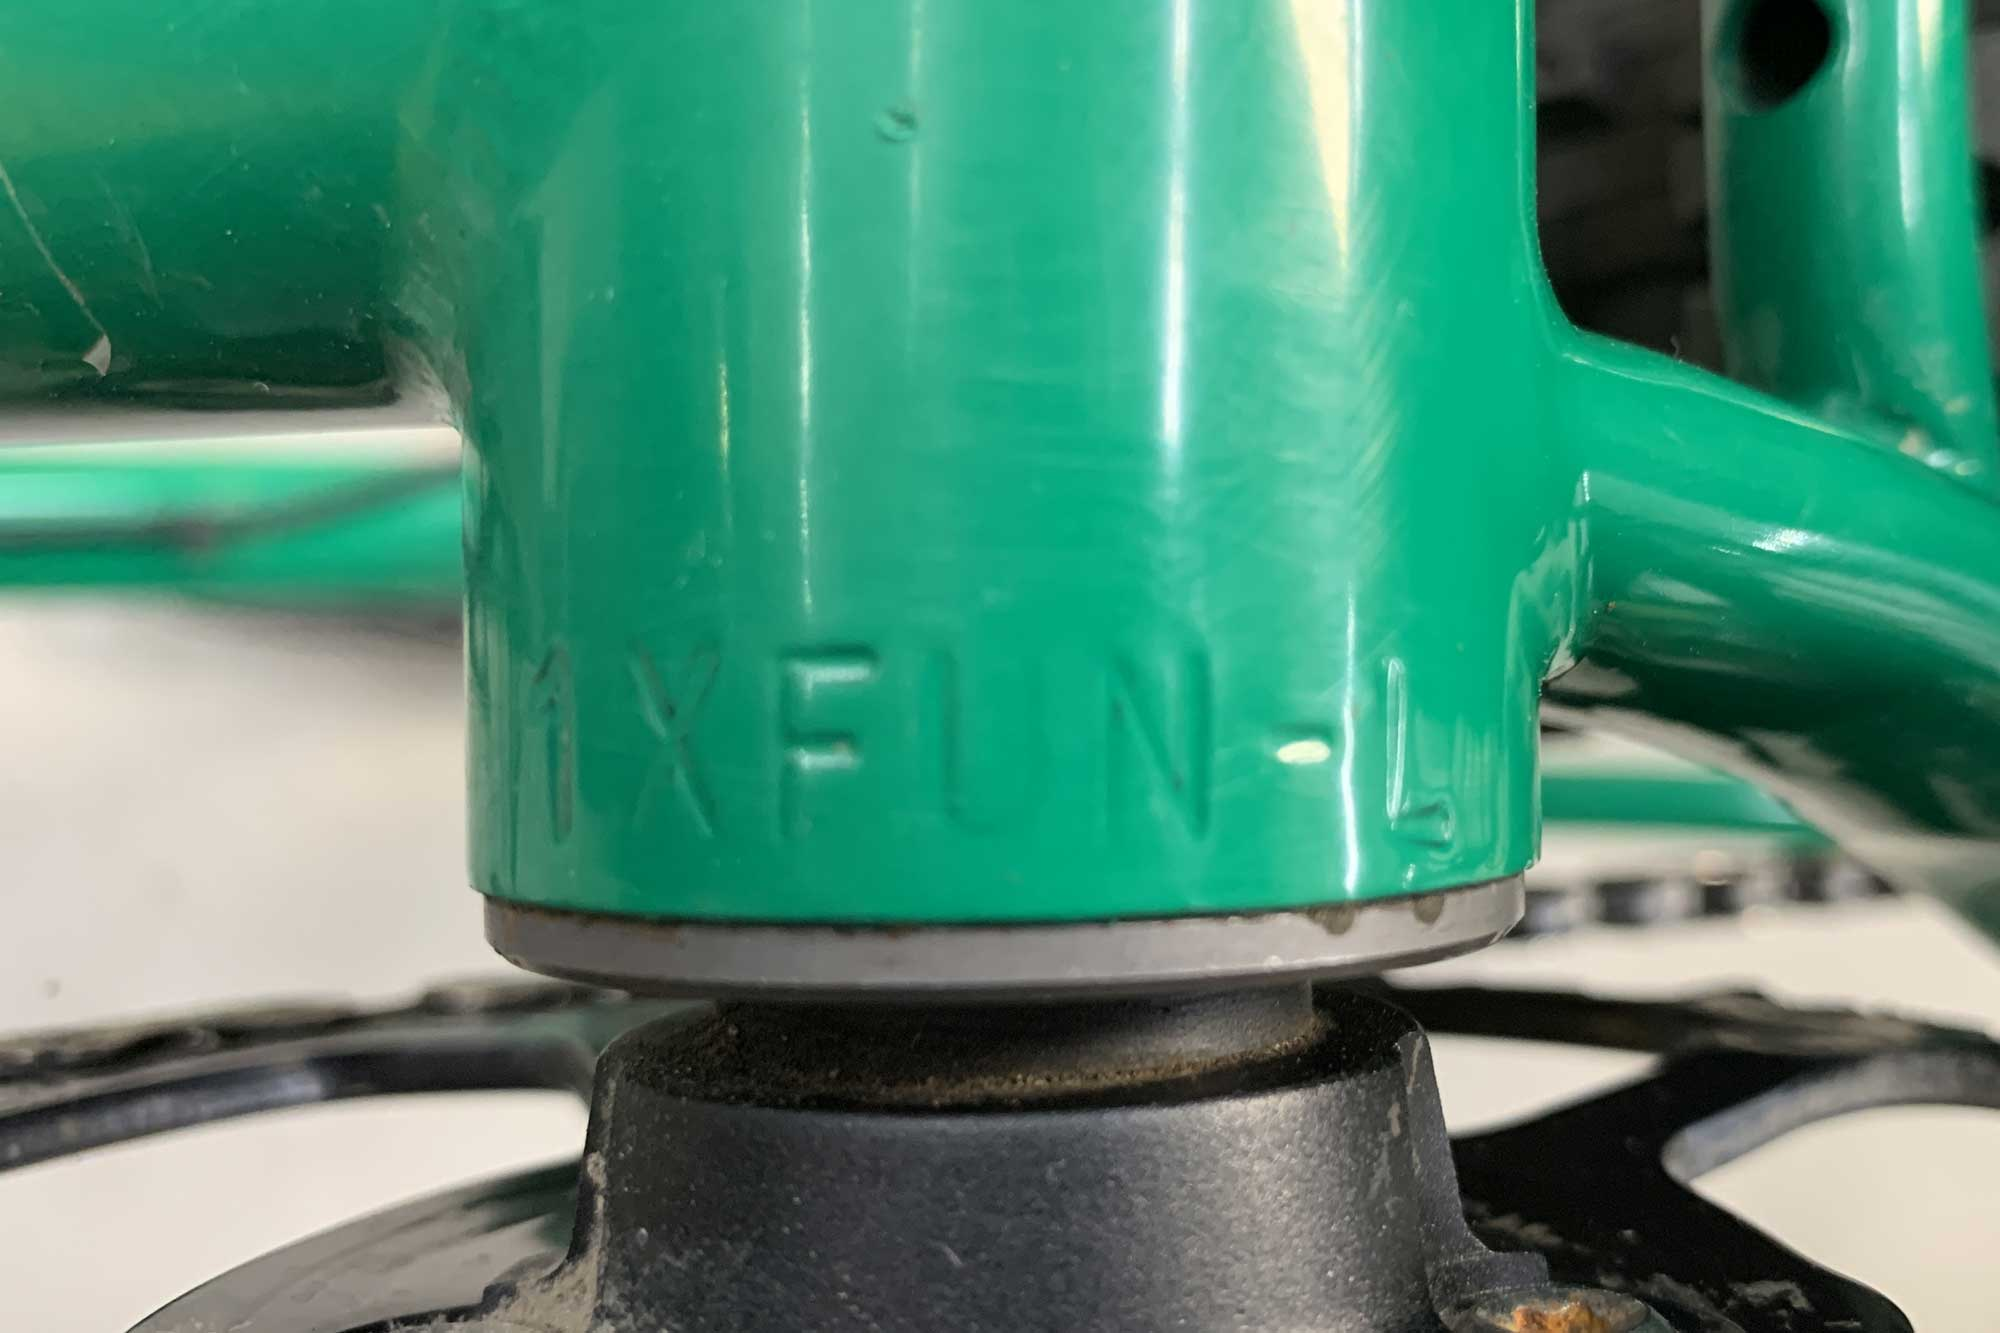 Close up view of the serial number on the bottom bracket a green Surly bike frame